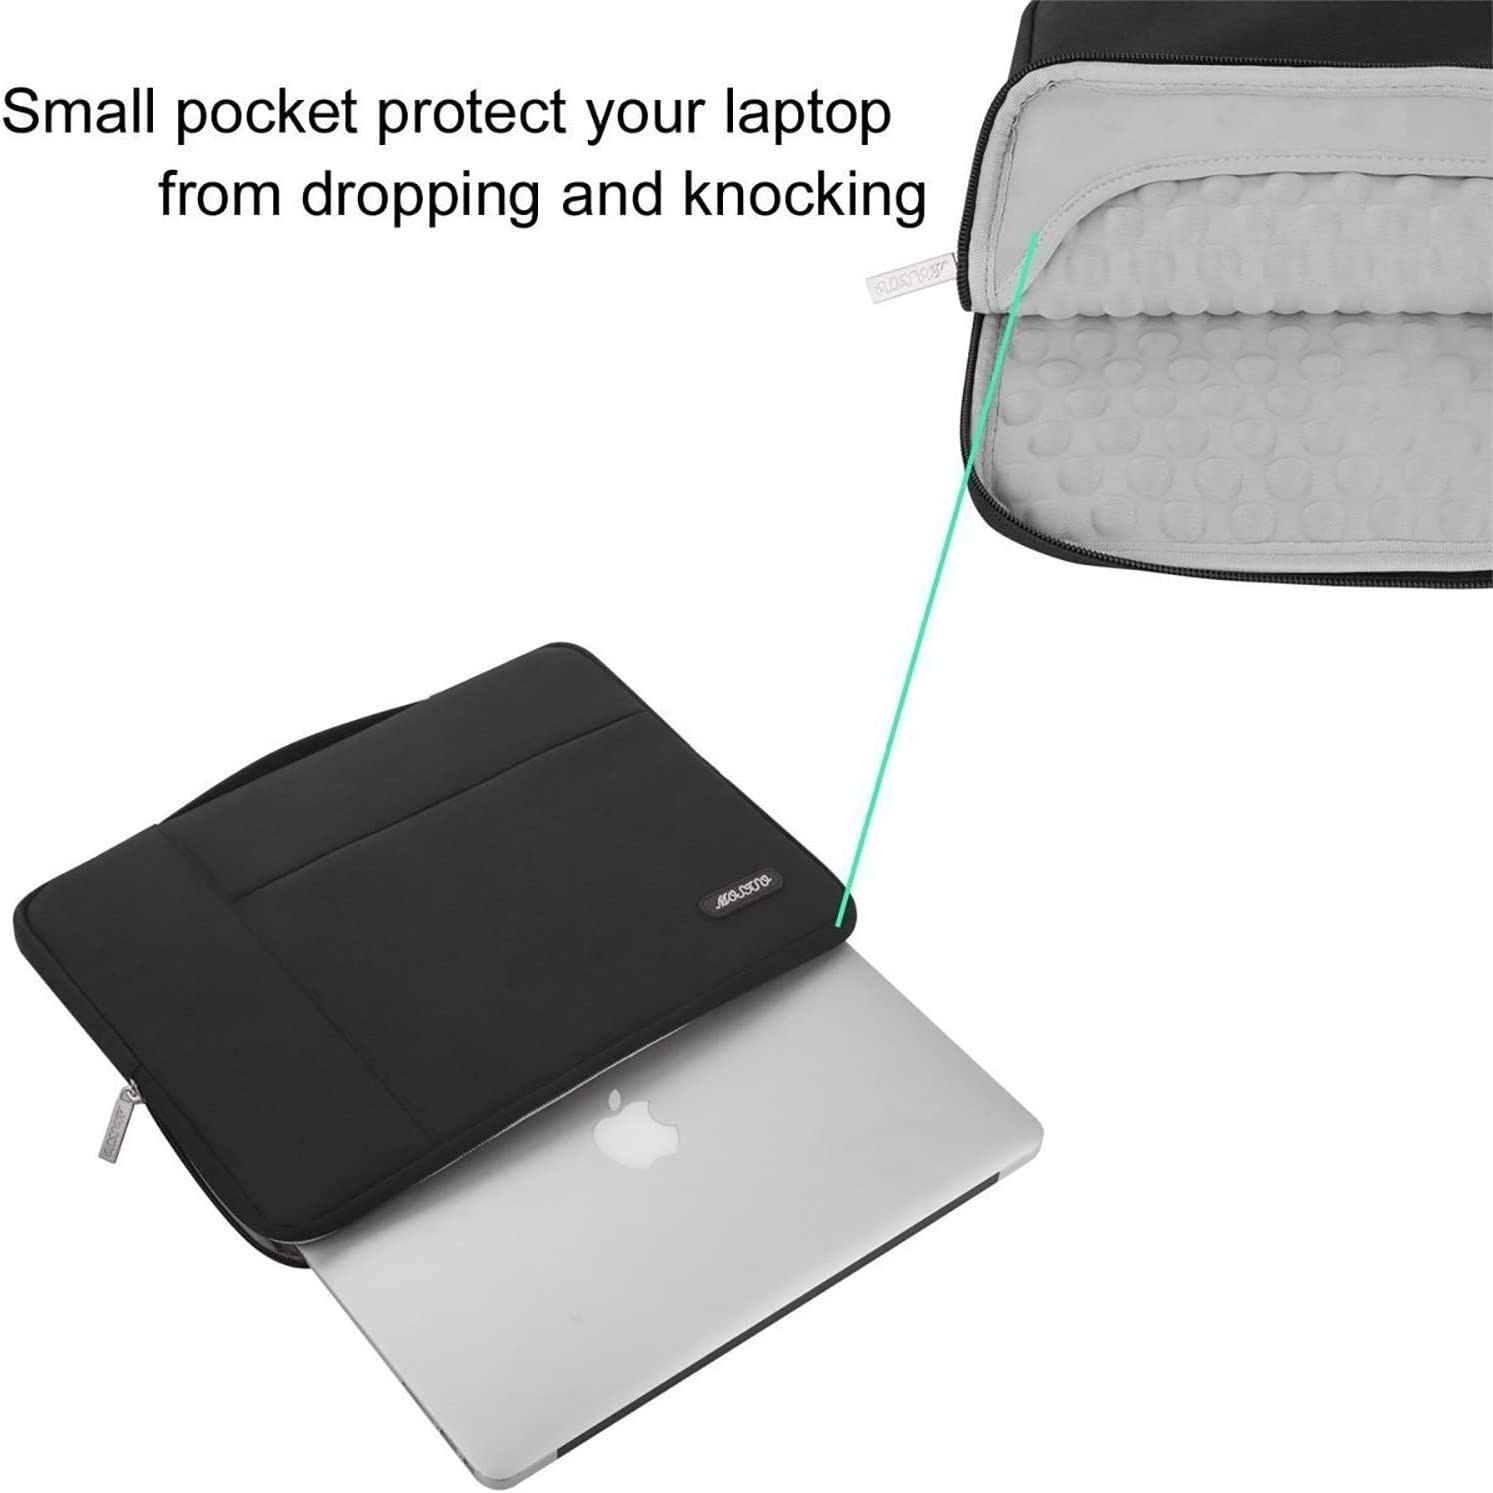 14 HP Acer Chromebook 2019 Surface Laptop 3 15 Deep Teal Polyester Multifunctional Sleeve Carrying Bag MOSISO Laptop Briefcase Compatible with MacBook Pro 15 inch Touch Bar A1990 A1707